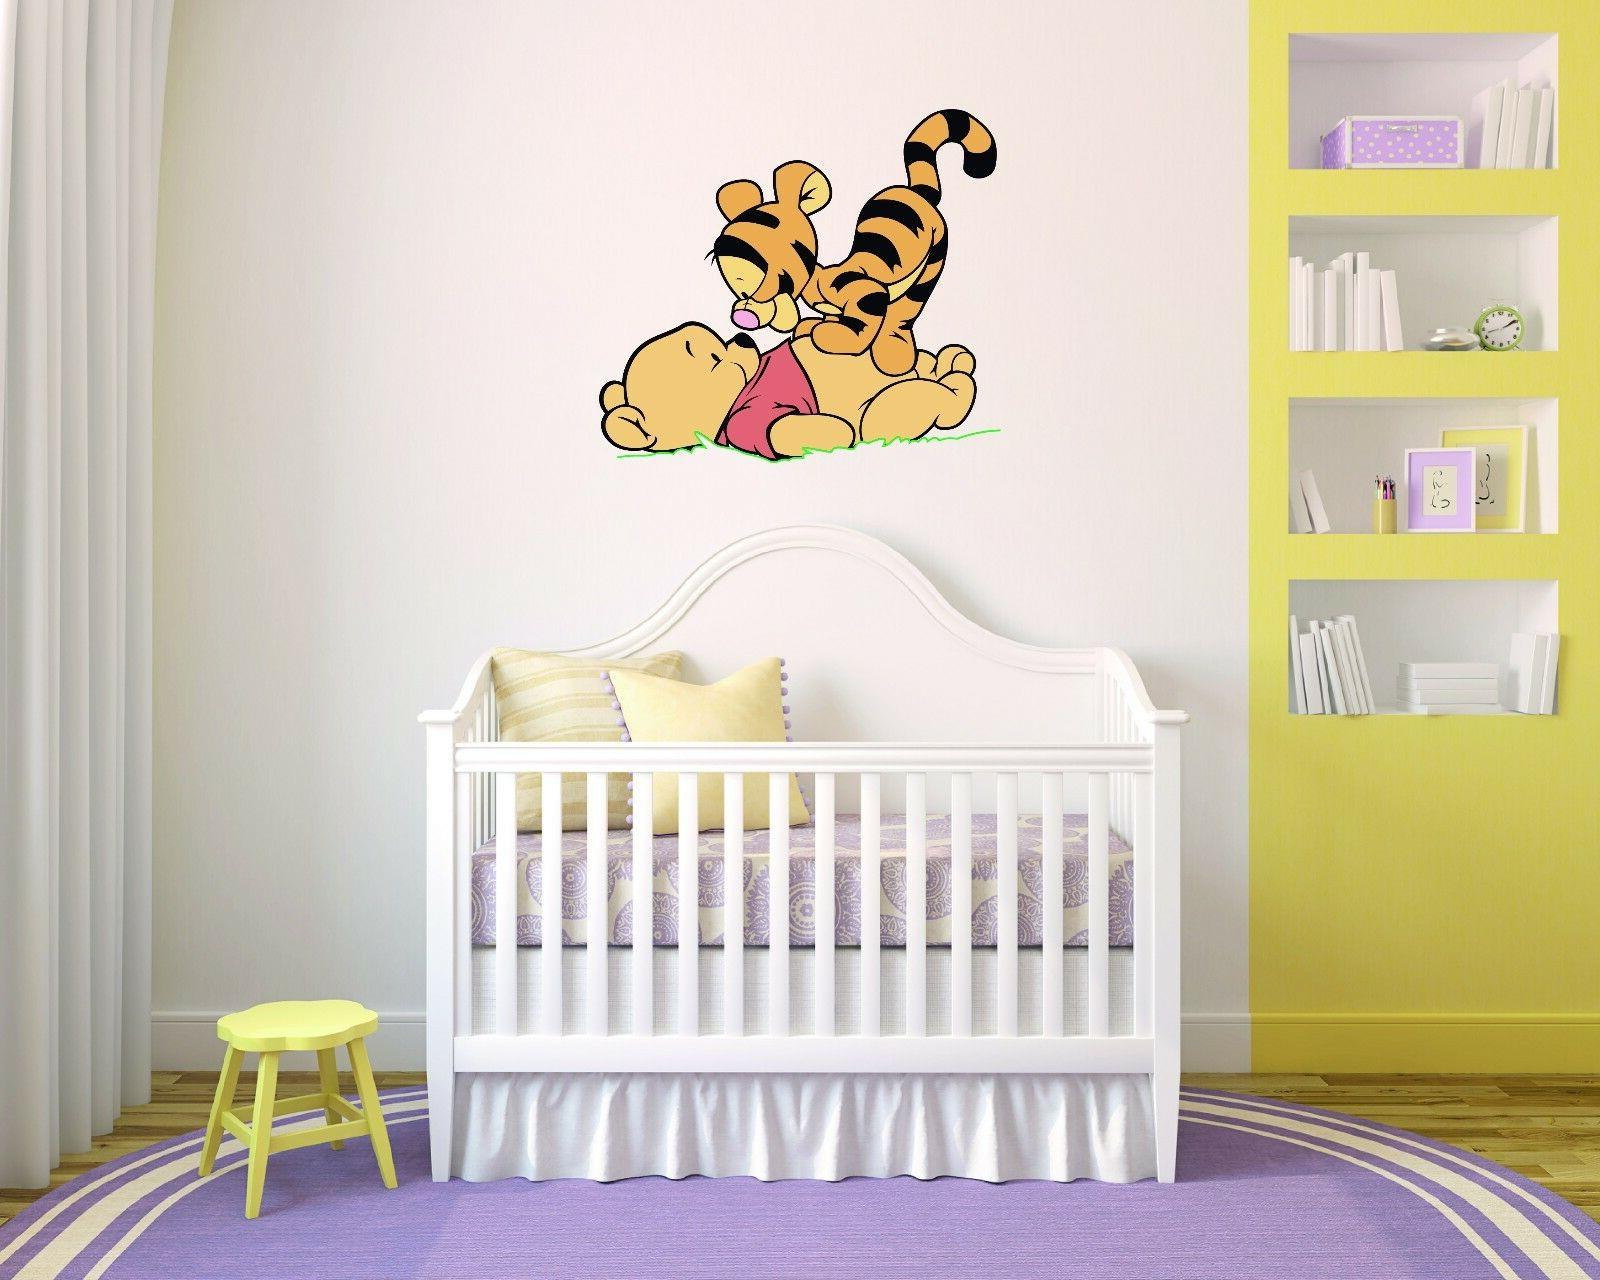 winnie pooh and tiger cute lovely moment